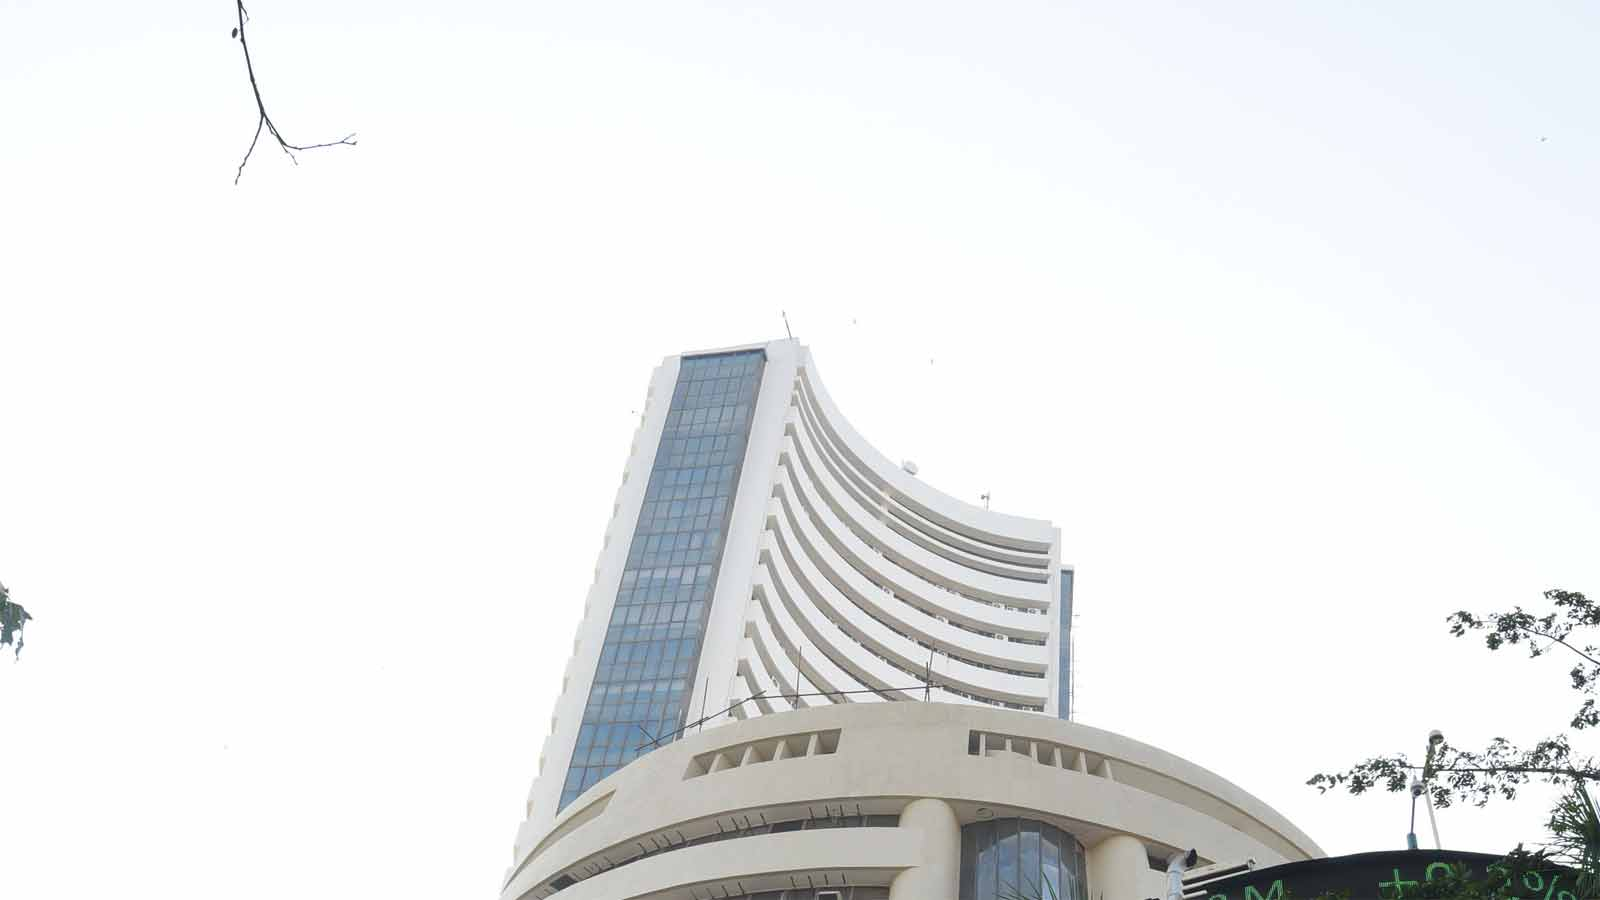 sensex-dives-over-600-points-nifty-below-10850